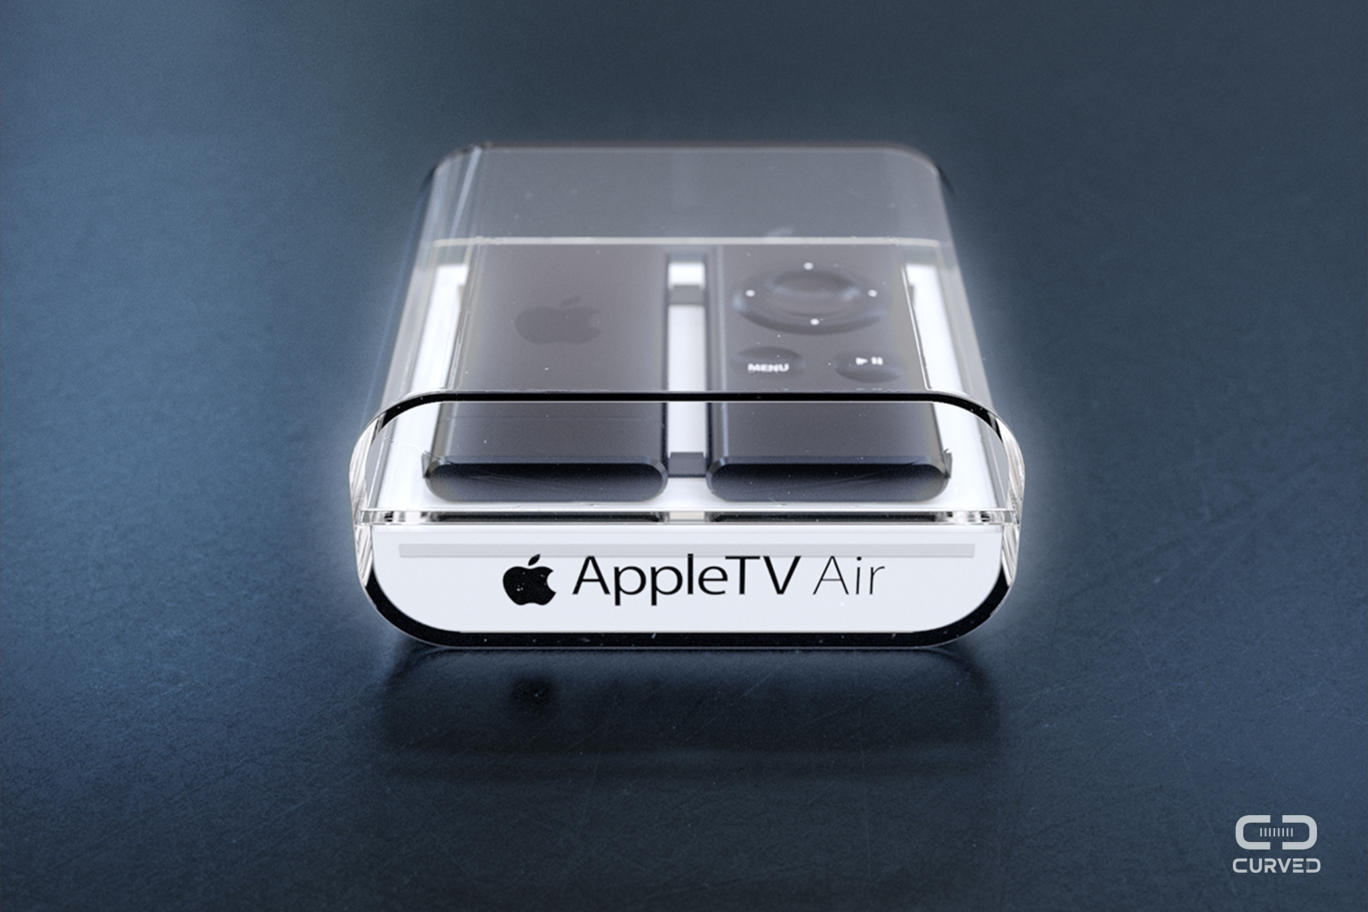 appletvair B1 New Apple TV Air concept turns Apple TV into a Chromecast like HDMI dongle